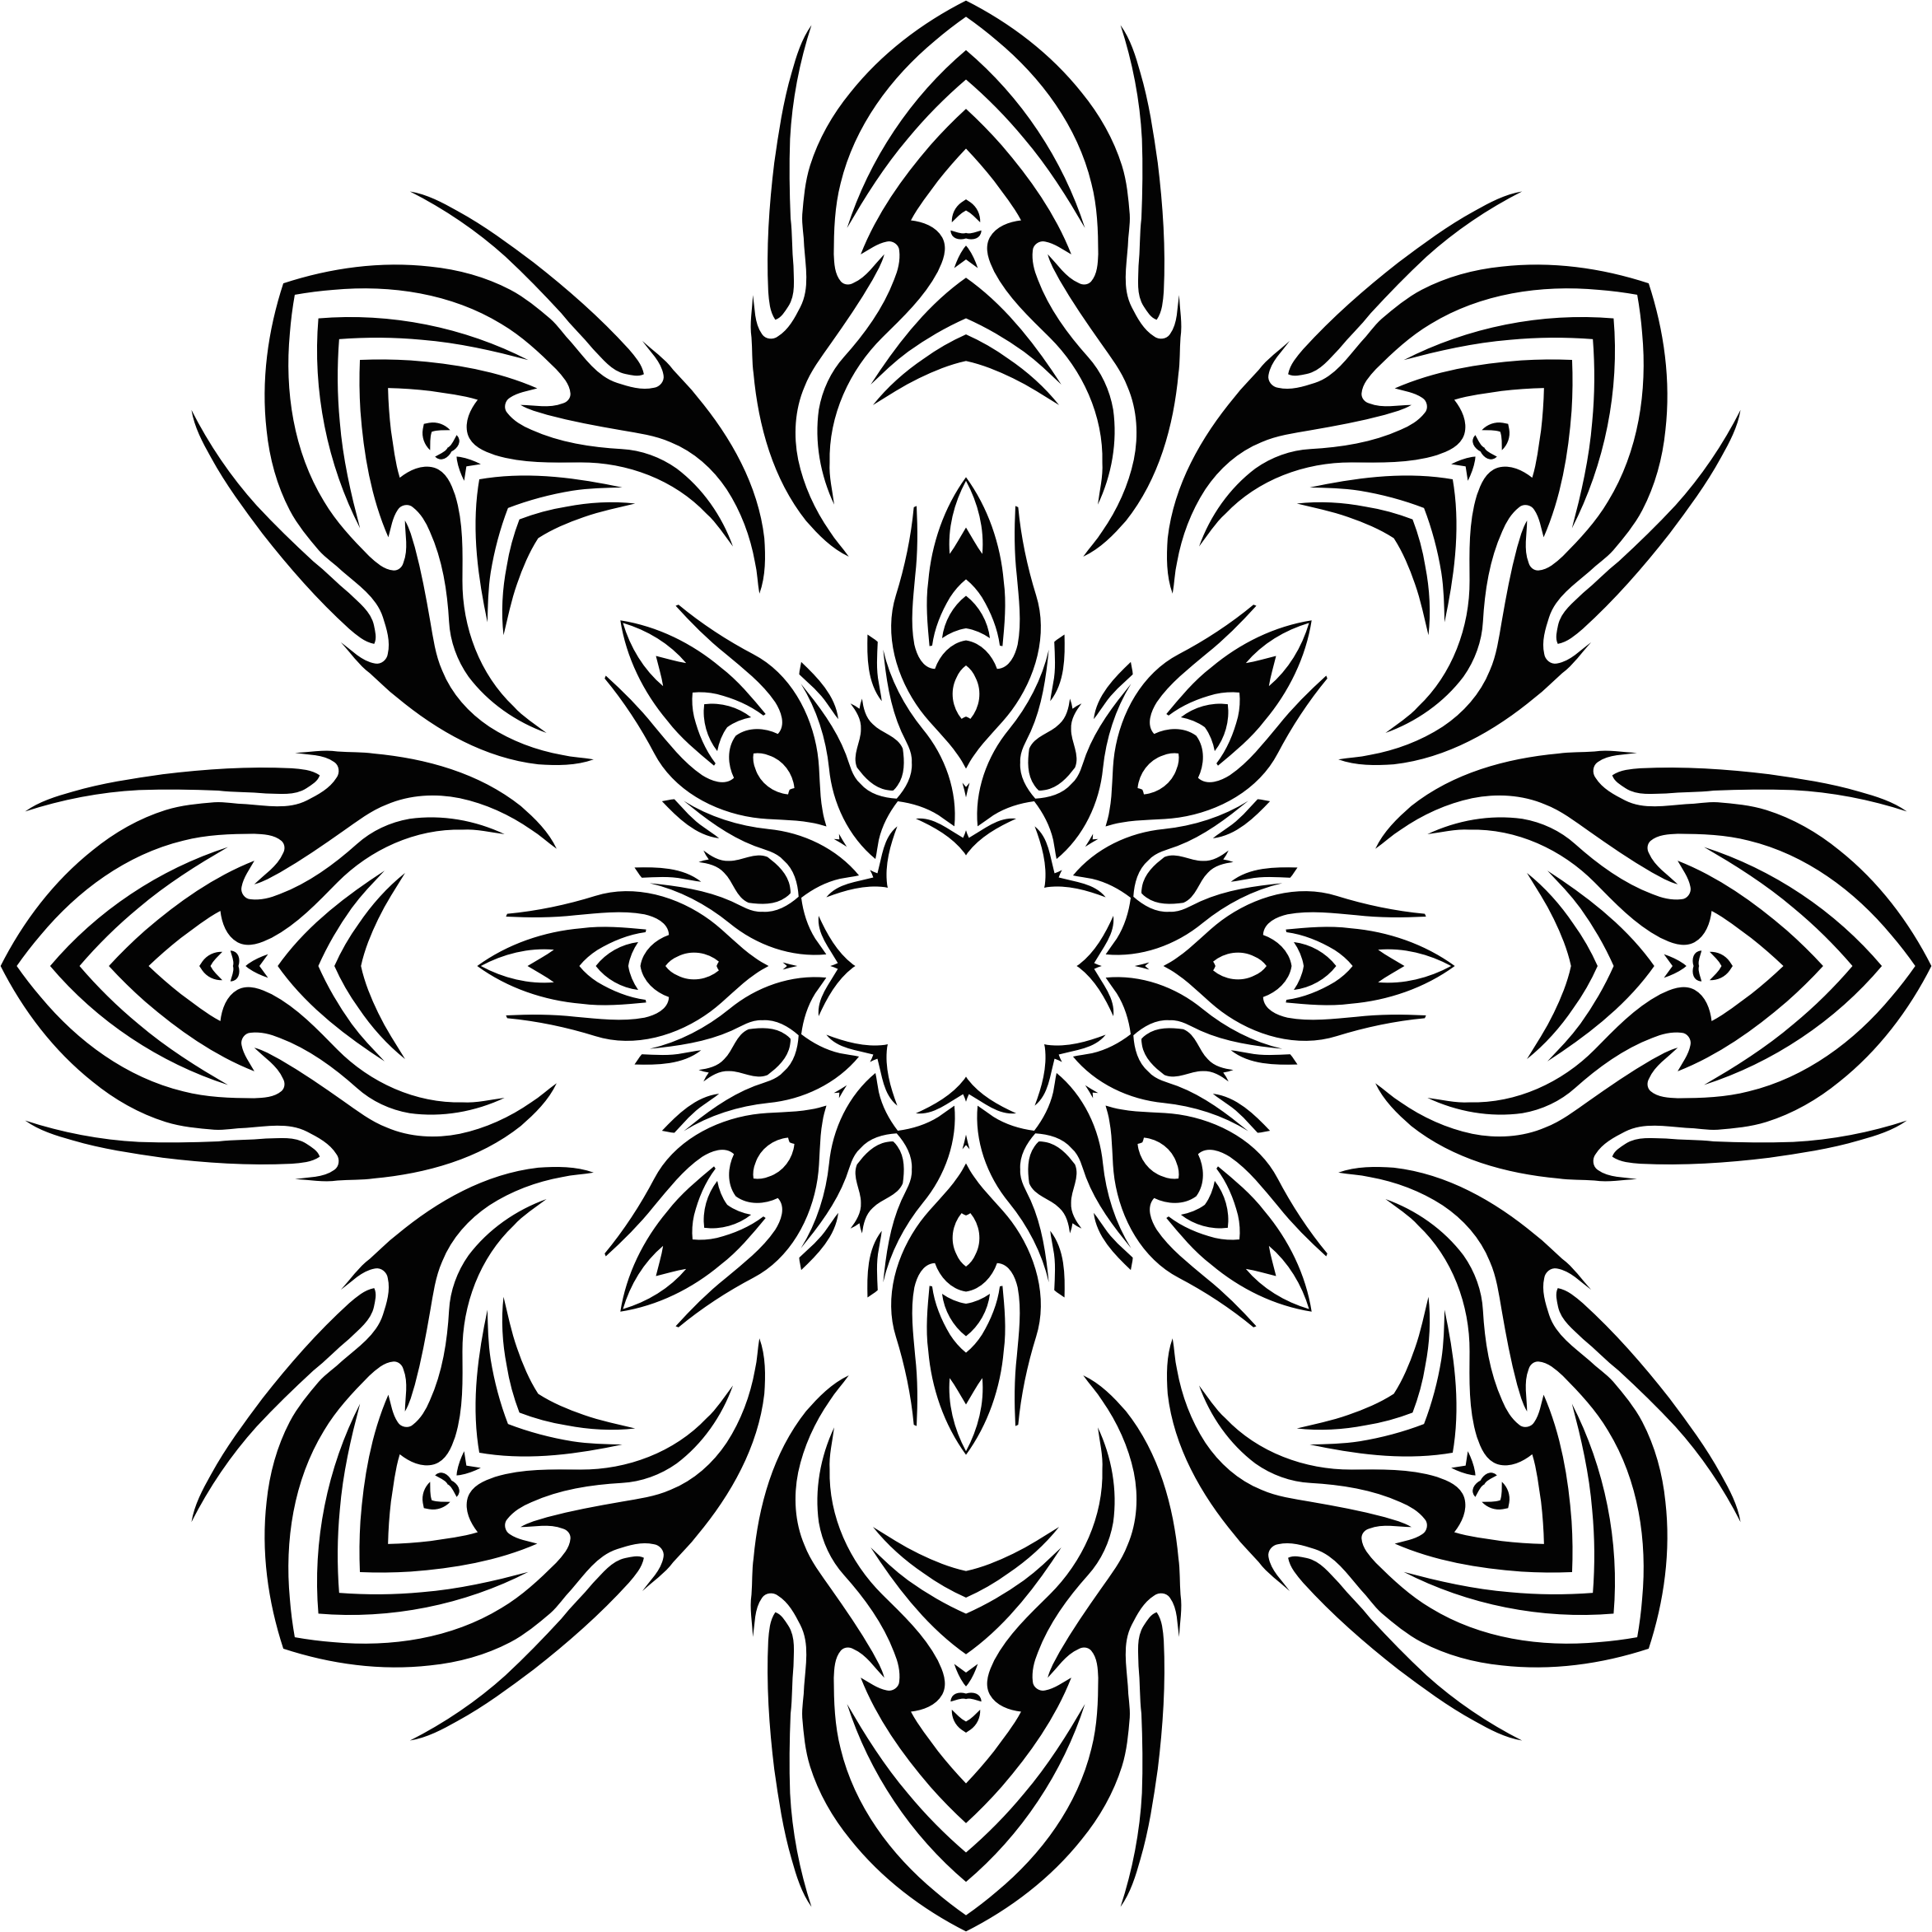 Flower tribal clipart image library Clipart - Tribal Flower 2 image library